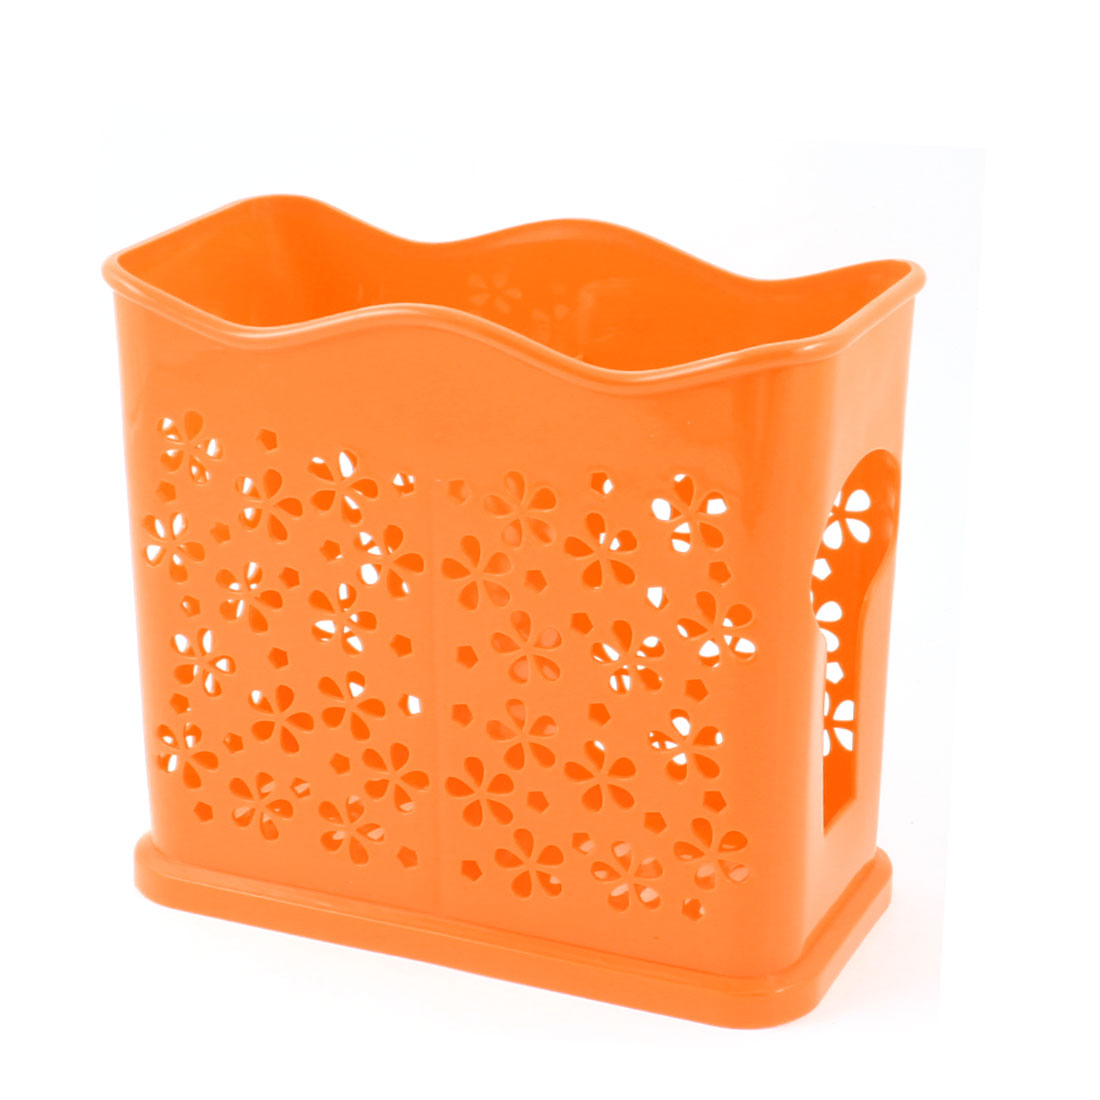 Hollow Out Flower Perforated 2 Compartments Chopsticks Spoon Cage Holder Orange